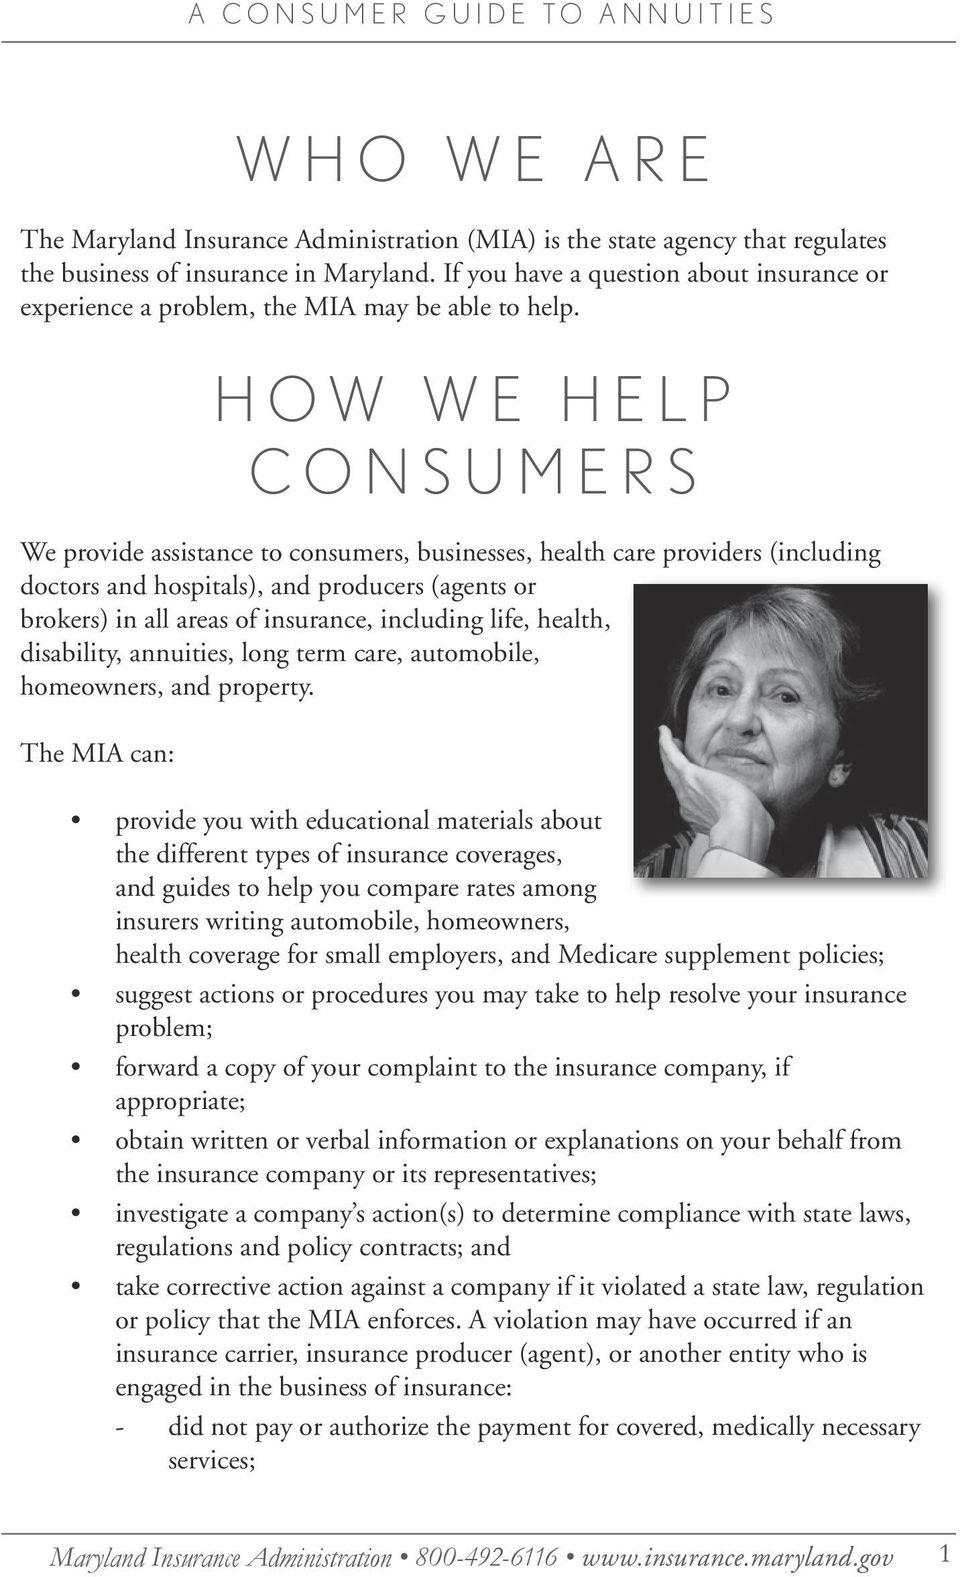 HOW WE HELP CONSUMERS We provide assistance to consumers, businesses, health care providers (including doctors and hospitals), and producers (agents or brokers) in all areas of insurance, including